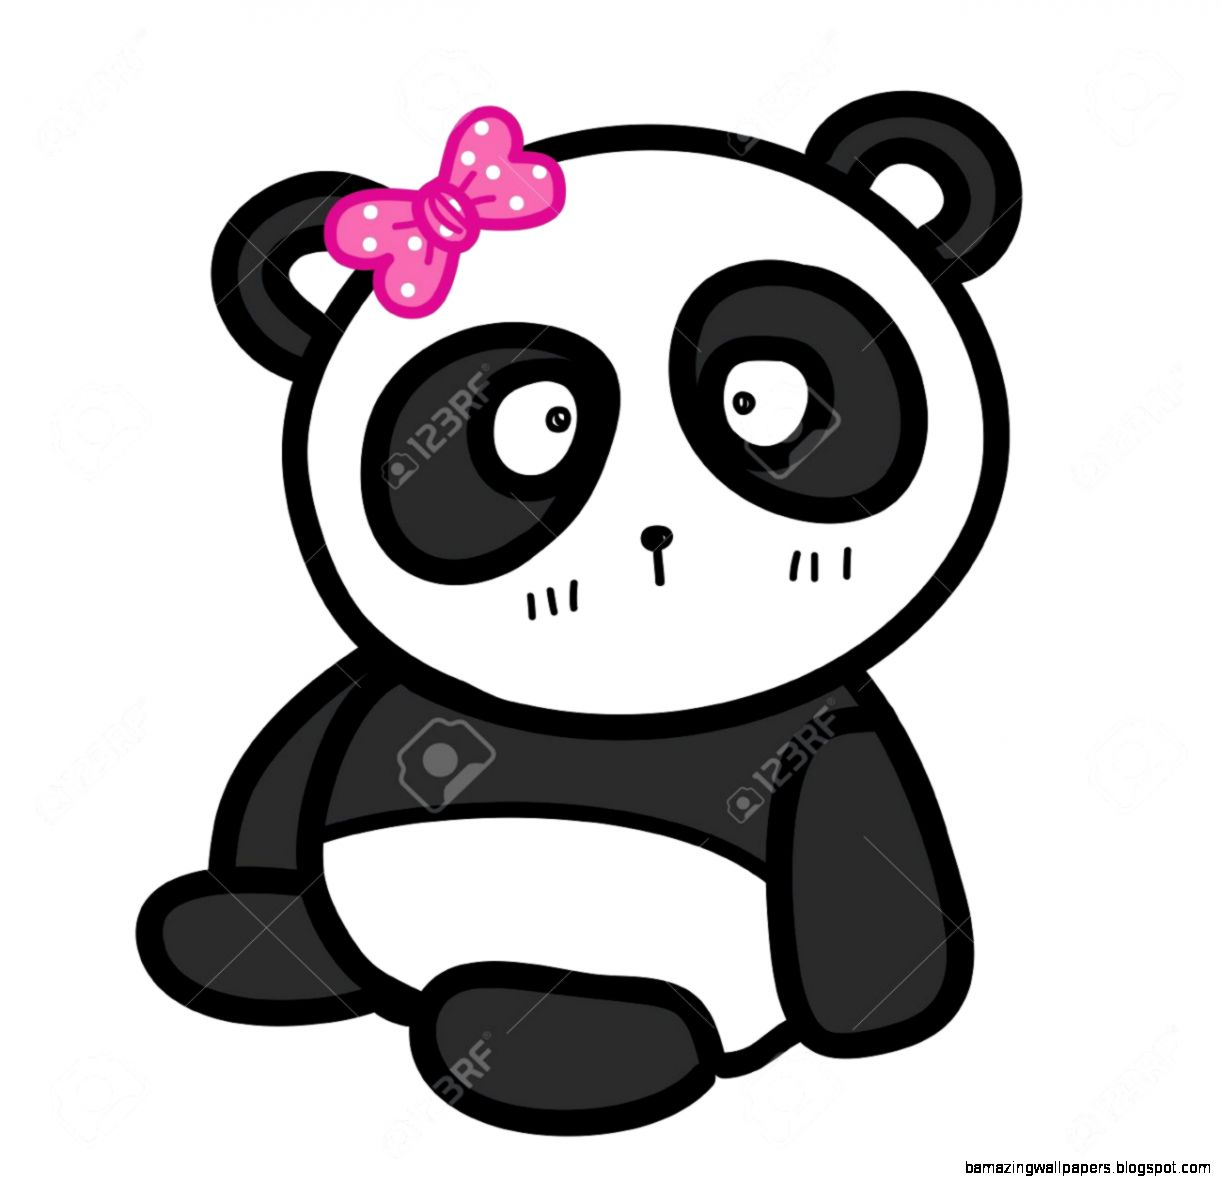 How to draw a cute baby panda - photo#12